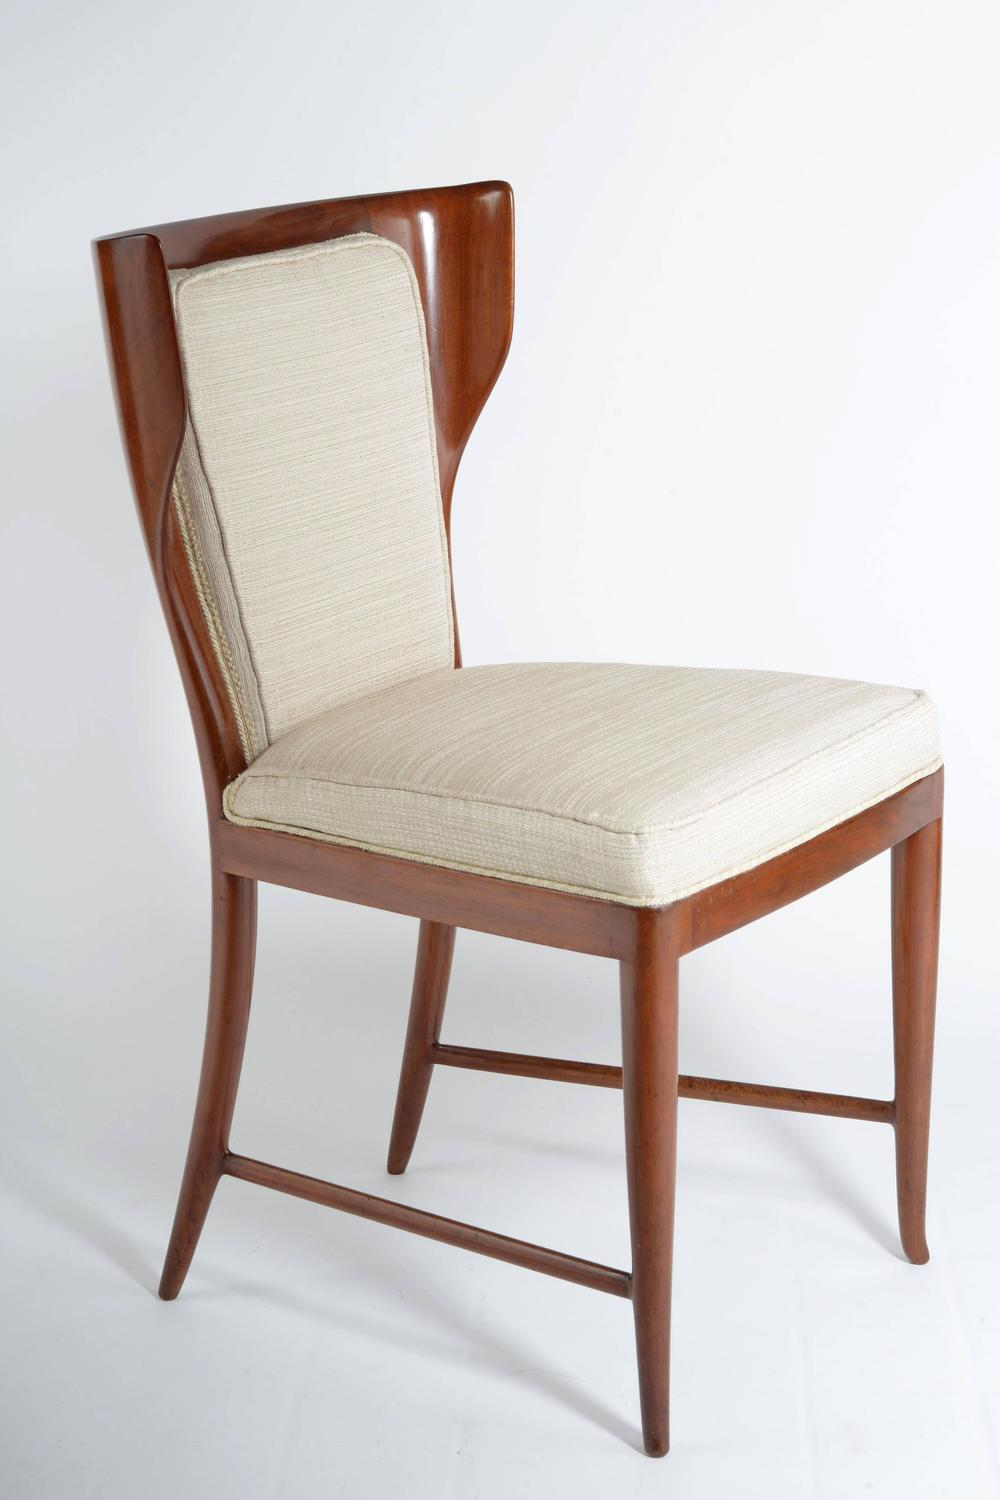 Four Elegant Chairs By Paolo Buffa Published For Sale At